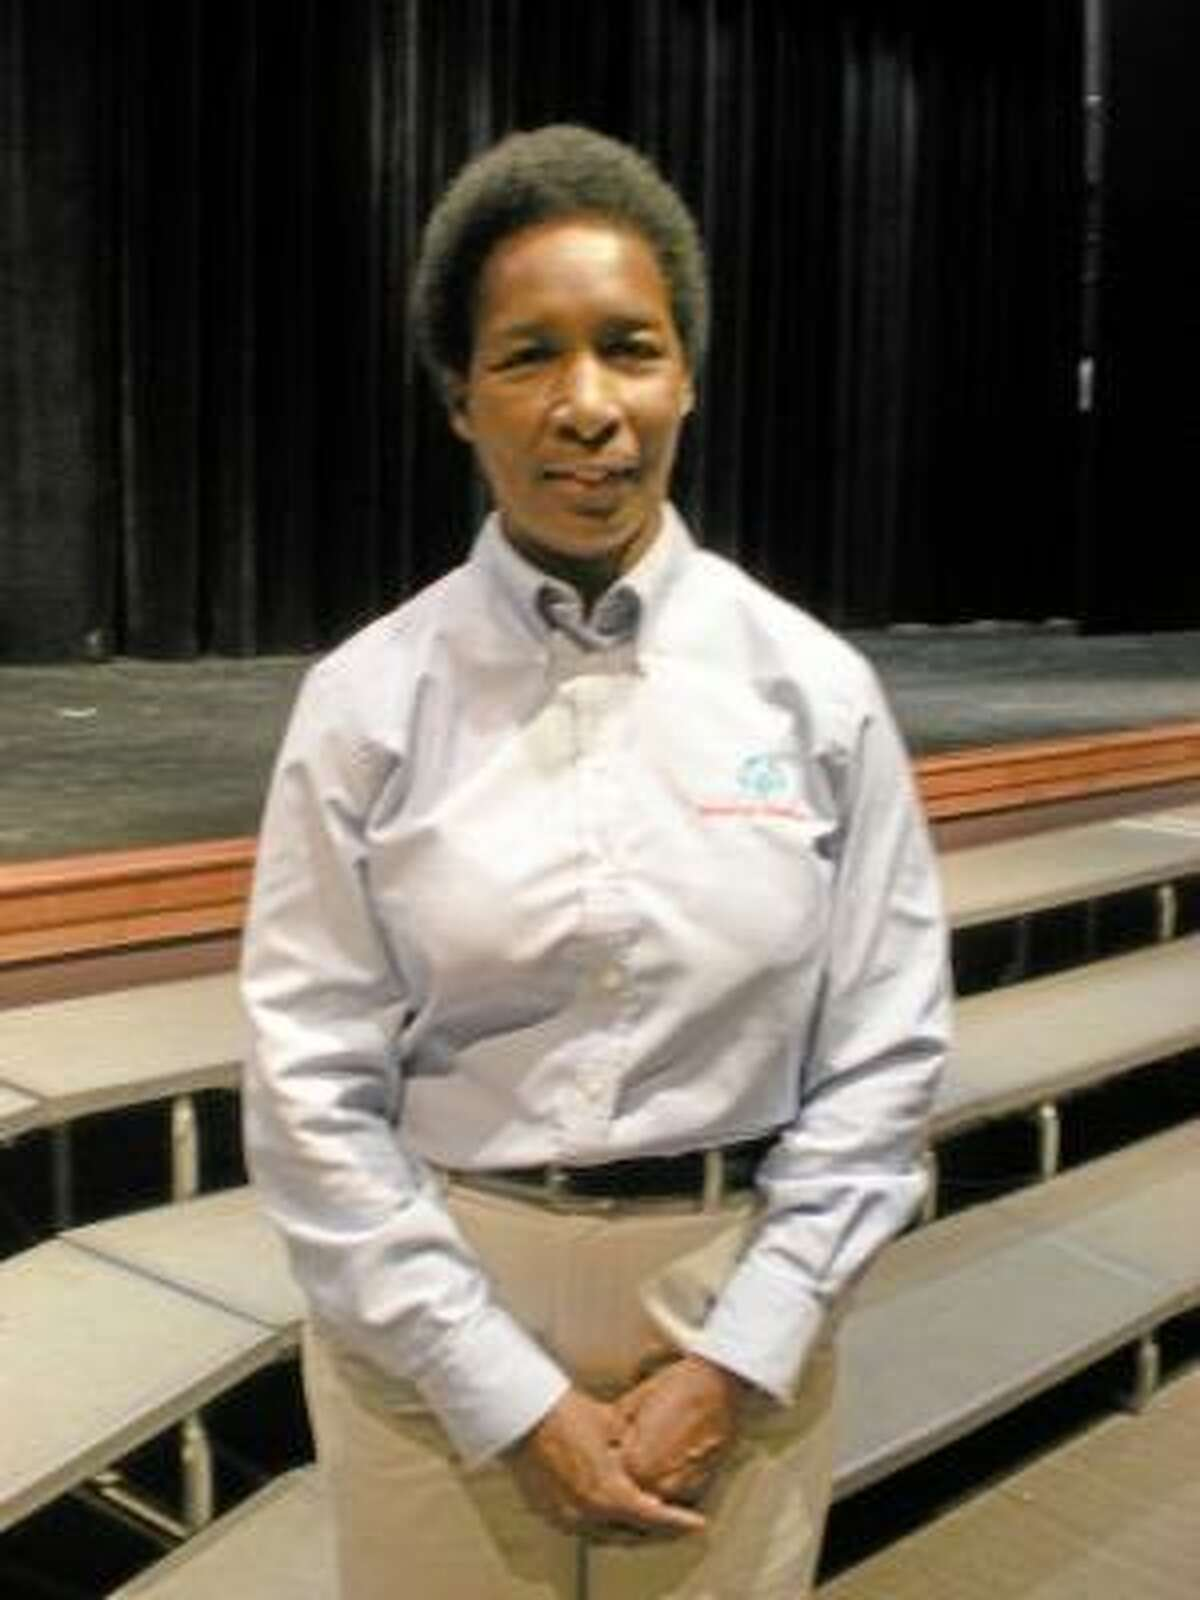 Photo by Daniela Forte Athlete and motivational speaker Loretta Claiborne visited Watertown High School on Monday.